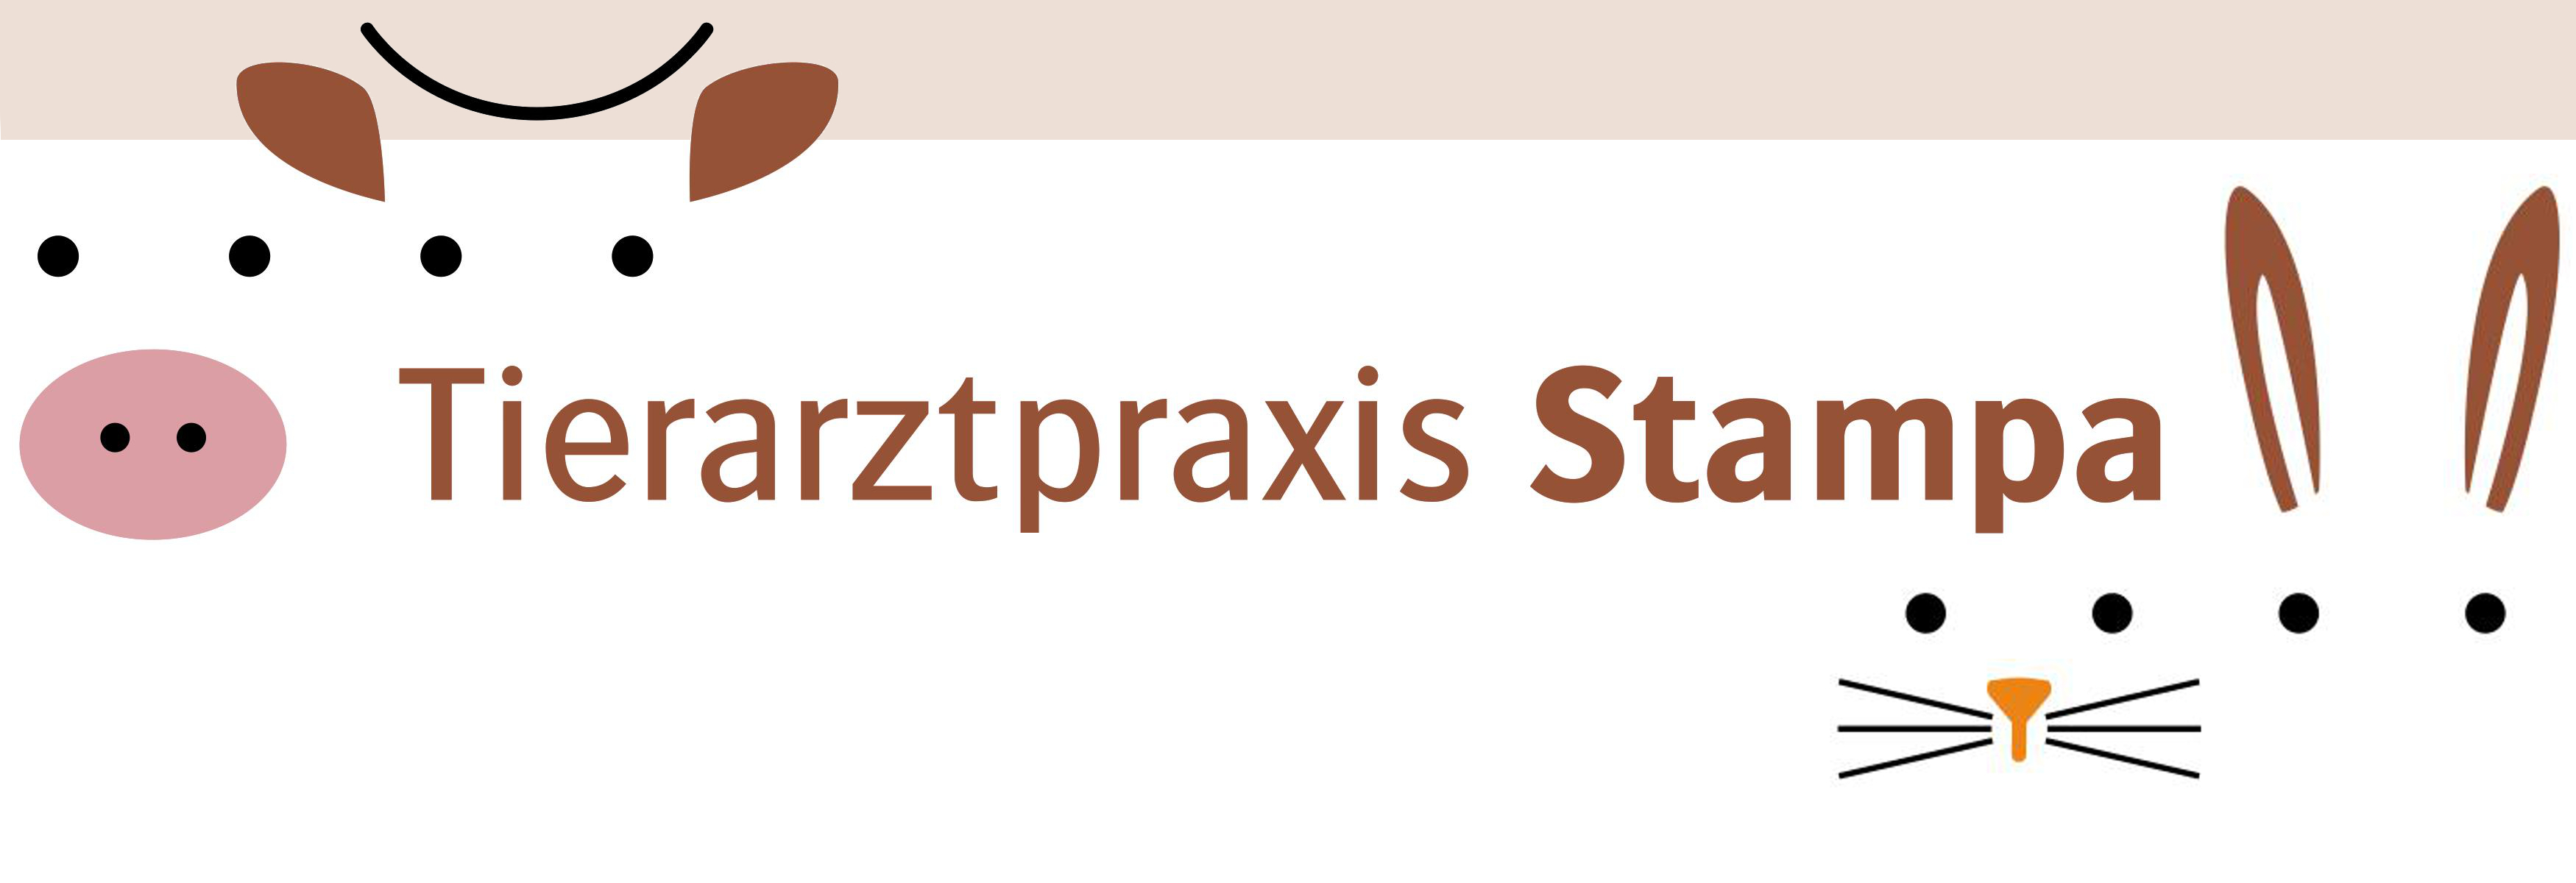 Tierarztpraxis Stampa Logo